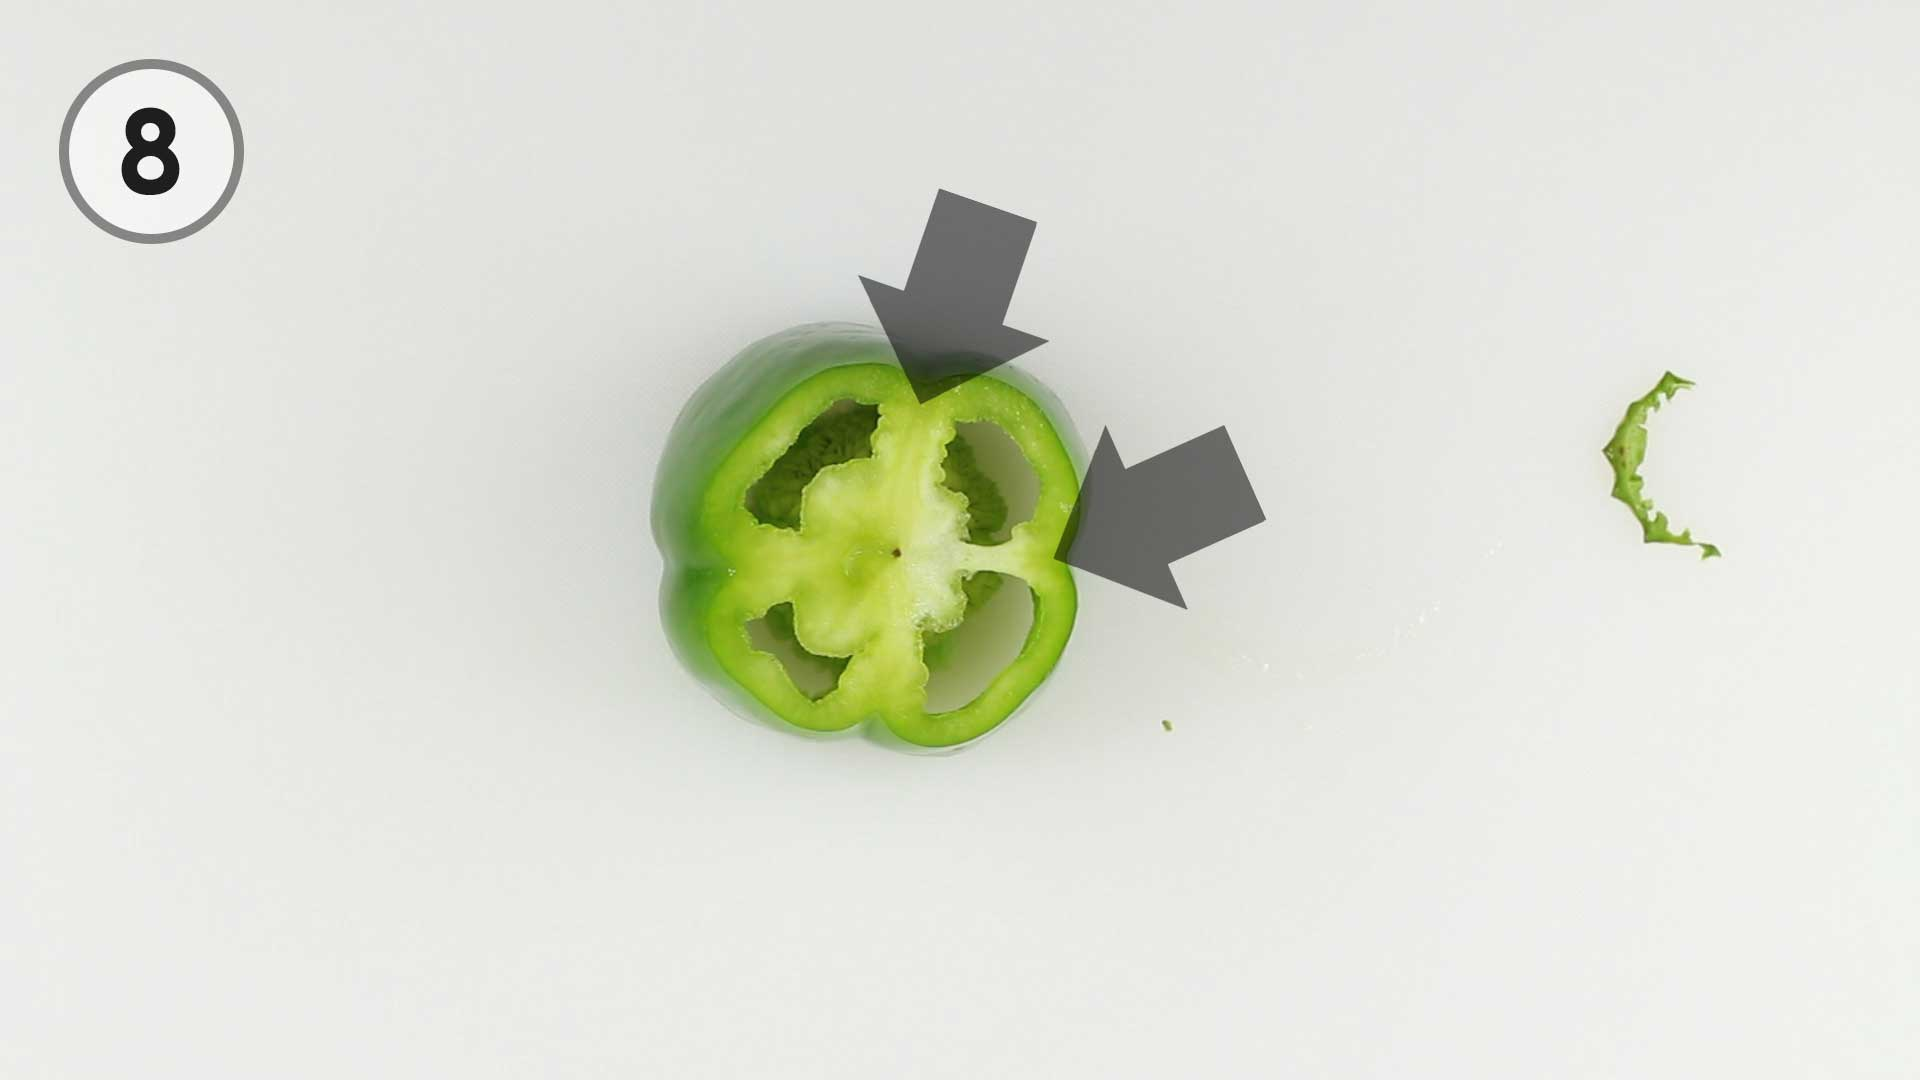 Step 8. Two Arrows point to where the pepper's white inner ribs meet the dark green outside of the pepper.